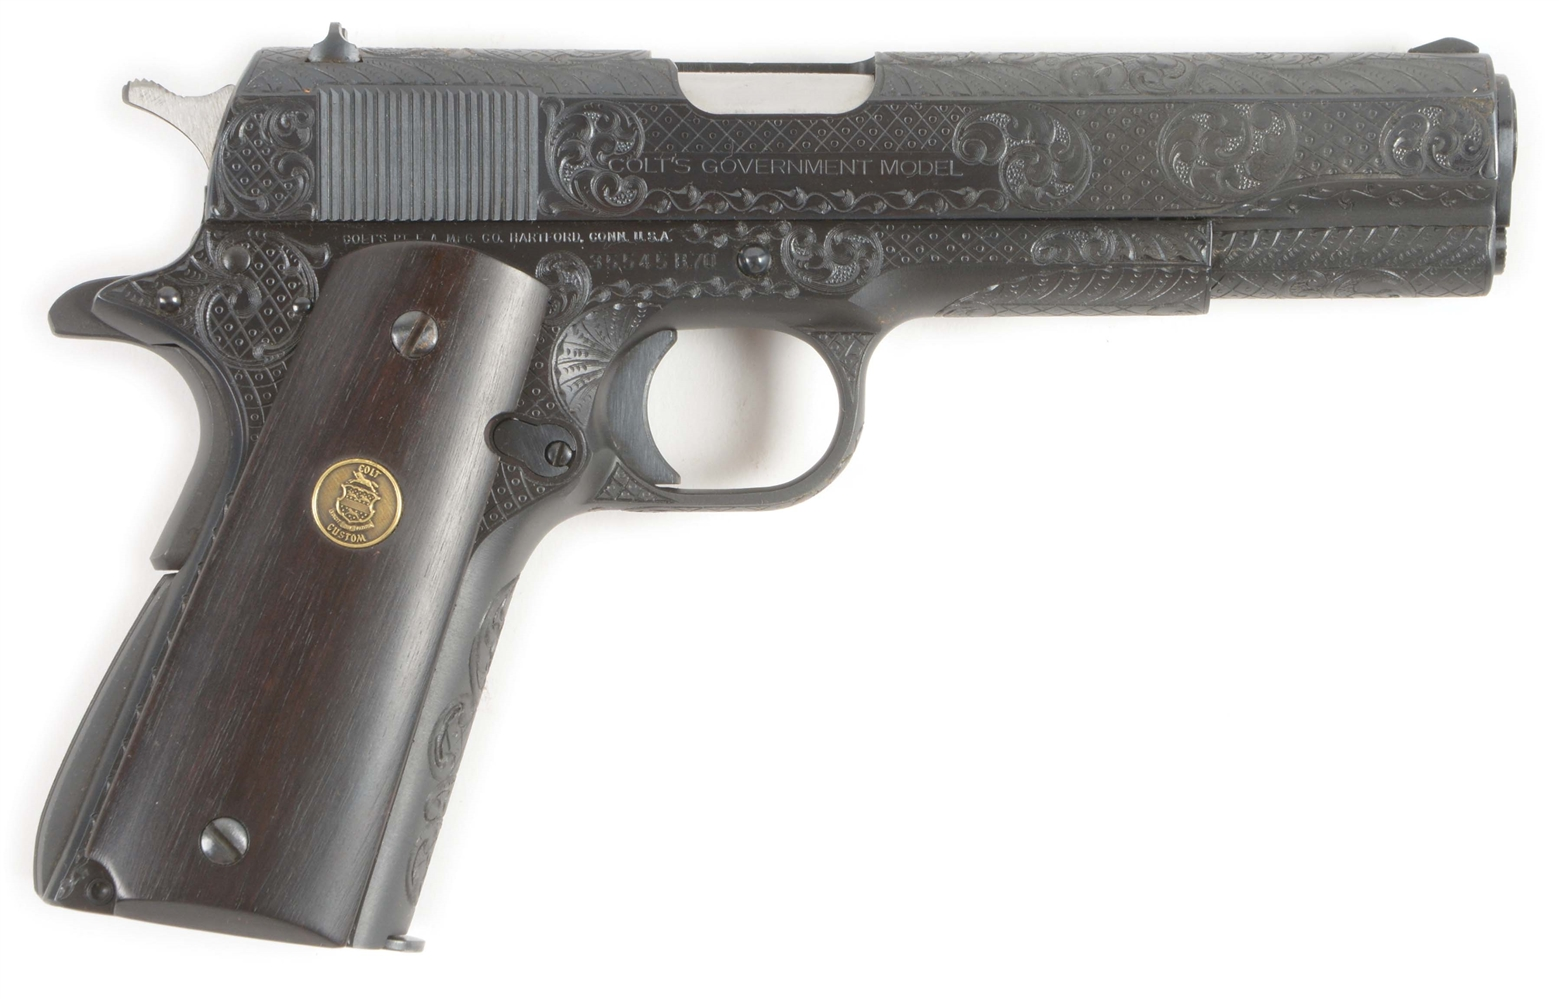 (M) FACTORY ENGRAVED COLT GOVERNMENT MKIV SERIES 70 .45 ACP SEMI-AUTOMATIC PISTOL WITH DOCUMENTATION.